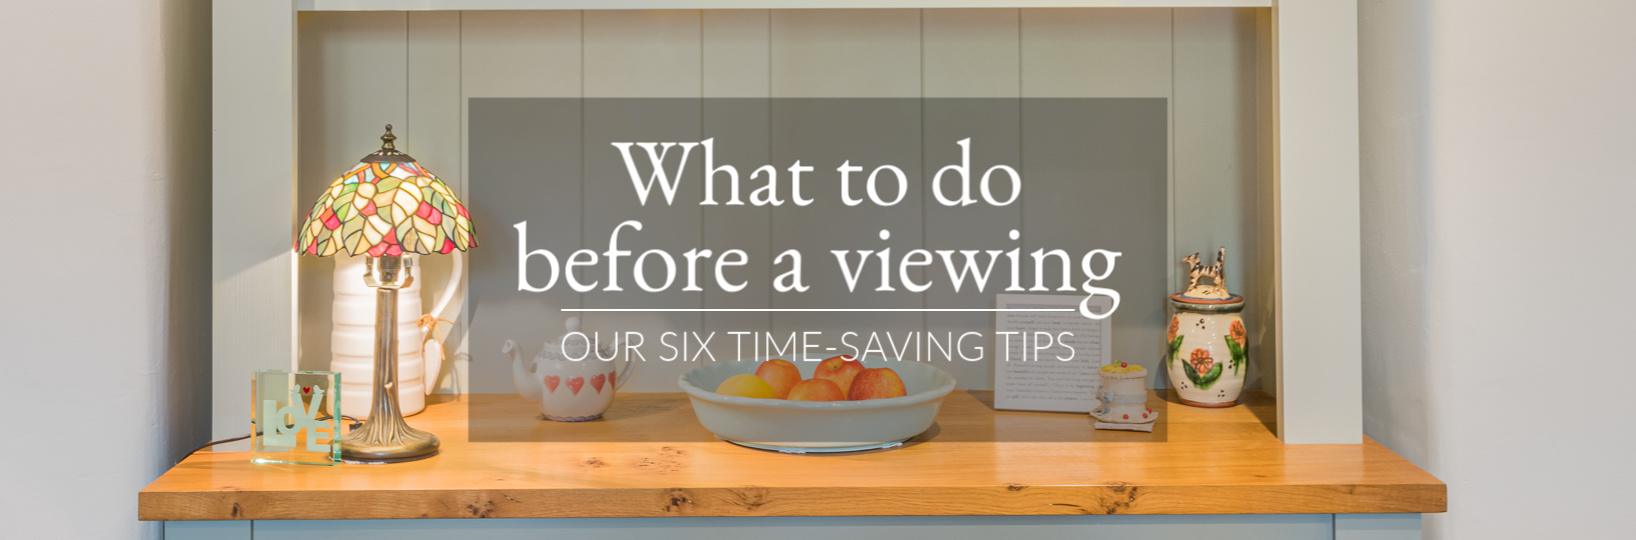 facebook-cover-art-what-to-do-before-a-viewing